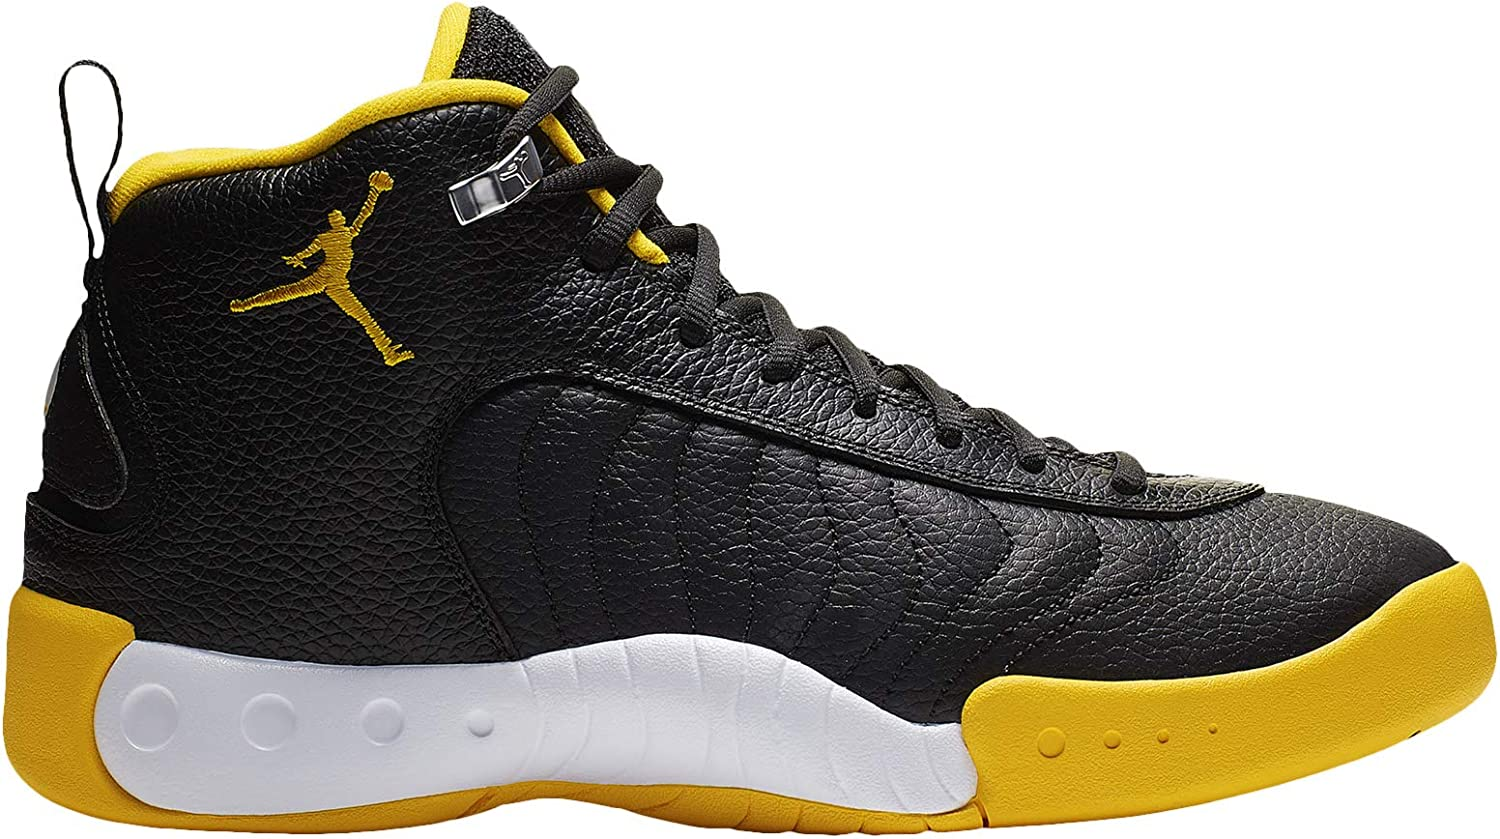 Nike Men's Jordan Jumpman Pro 黒/University ゴールド/白い Leather Basketball Shoes 8.5 M US